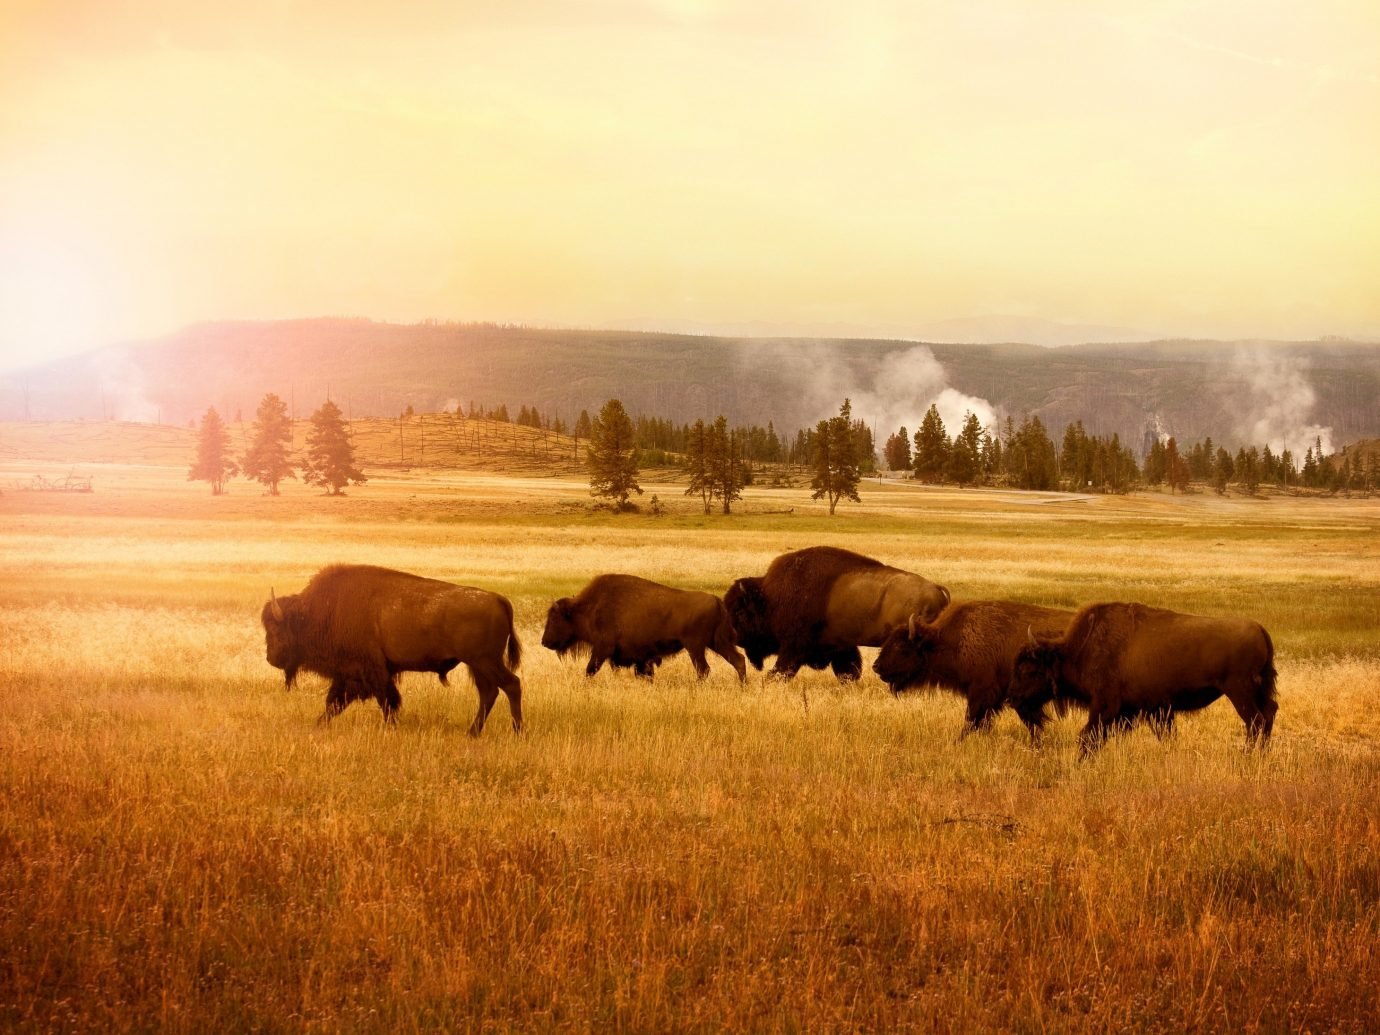 Mountains + Skiing Trip Ideas grass outdoor sky field cow grazing habitat herd pasture standing grassland brown atmospheric phenomenon plain natural environment ecosystem prairie savanna cattle like mammal steppe group morning Wildlife cattle grassy meadow cloudy clouds lush day colored distance